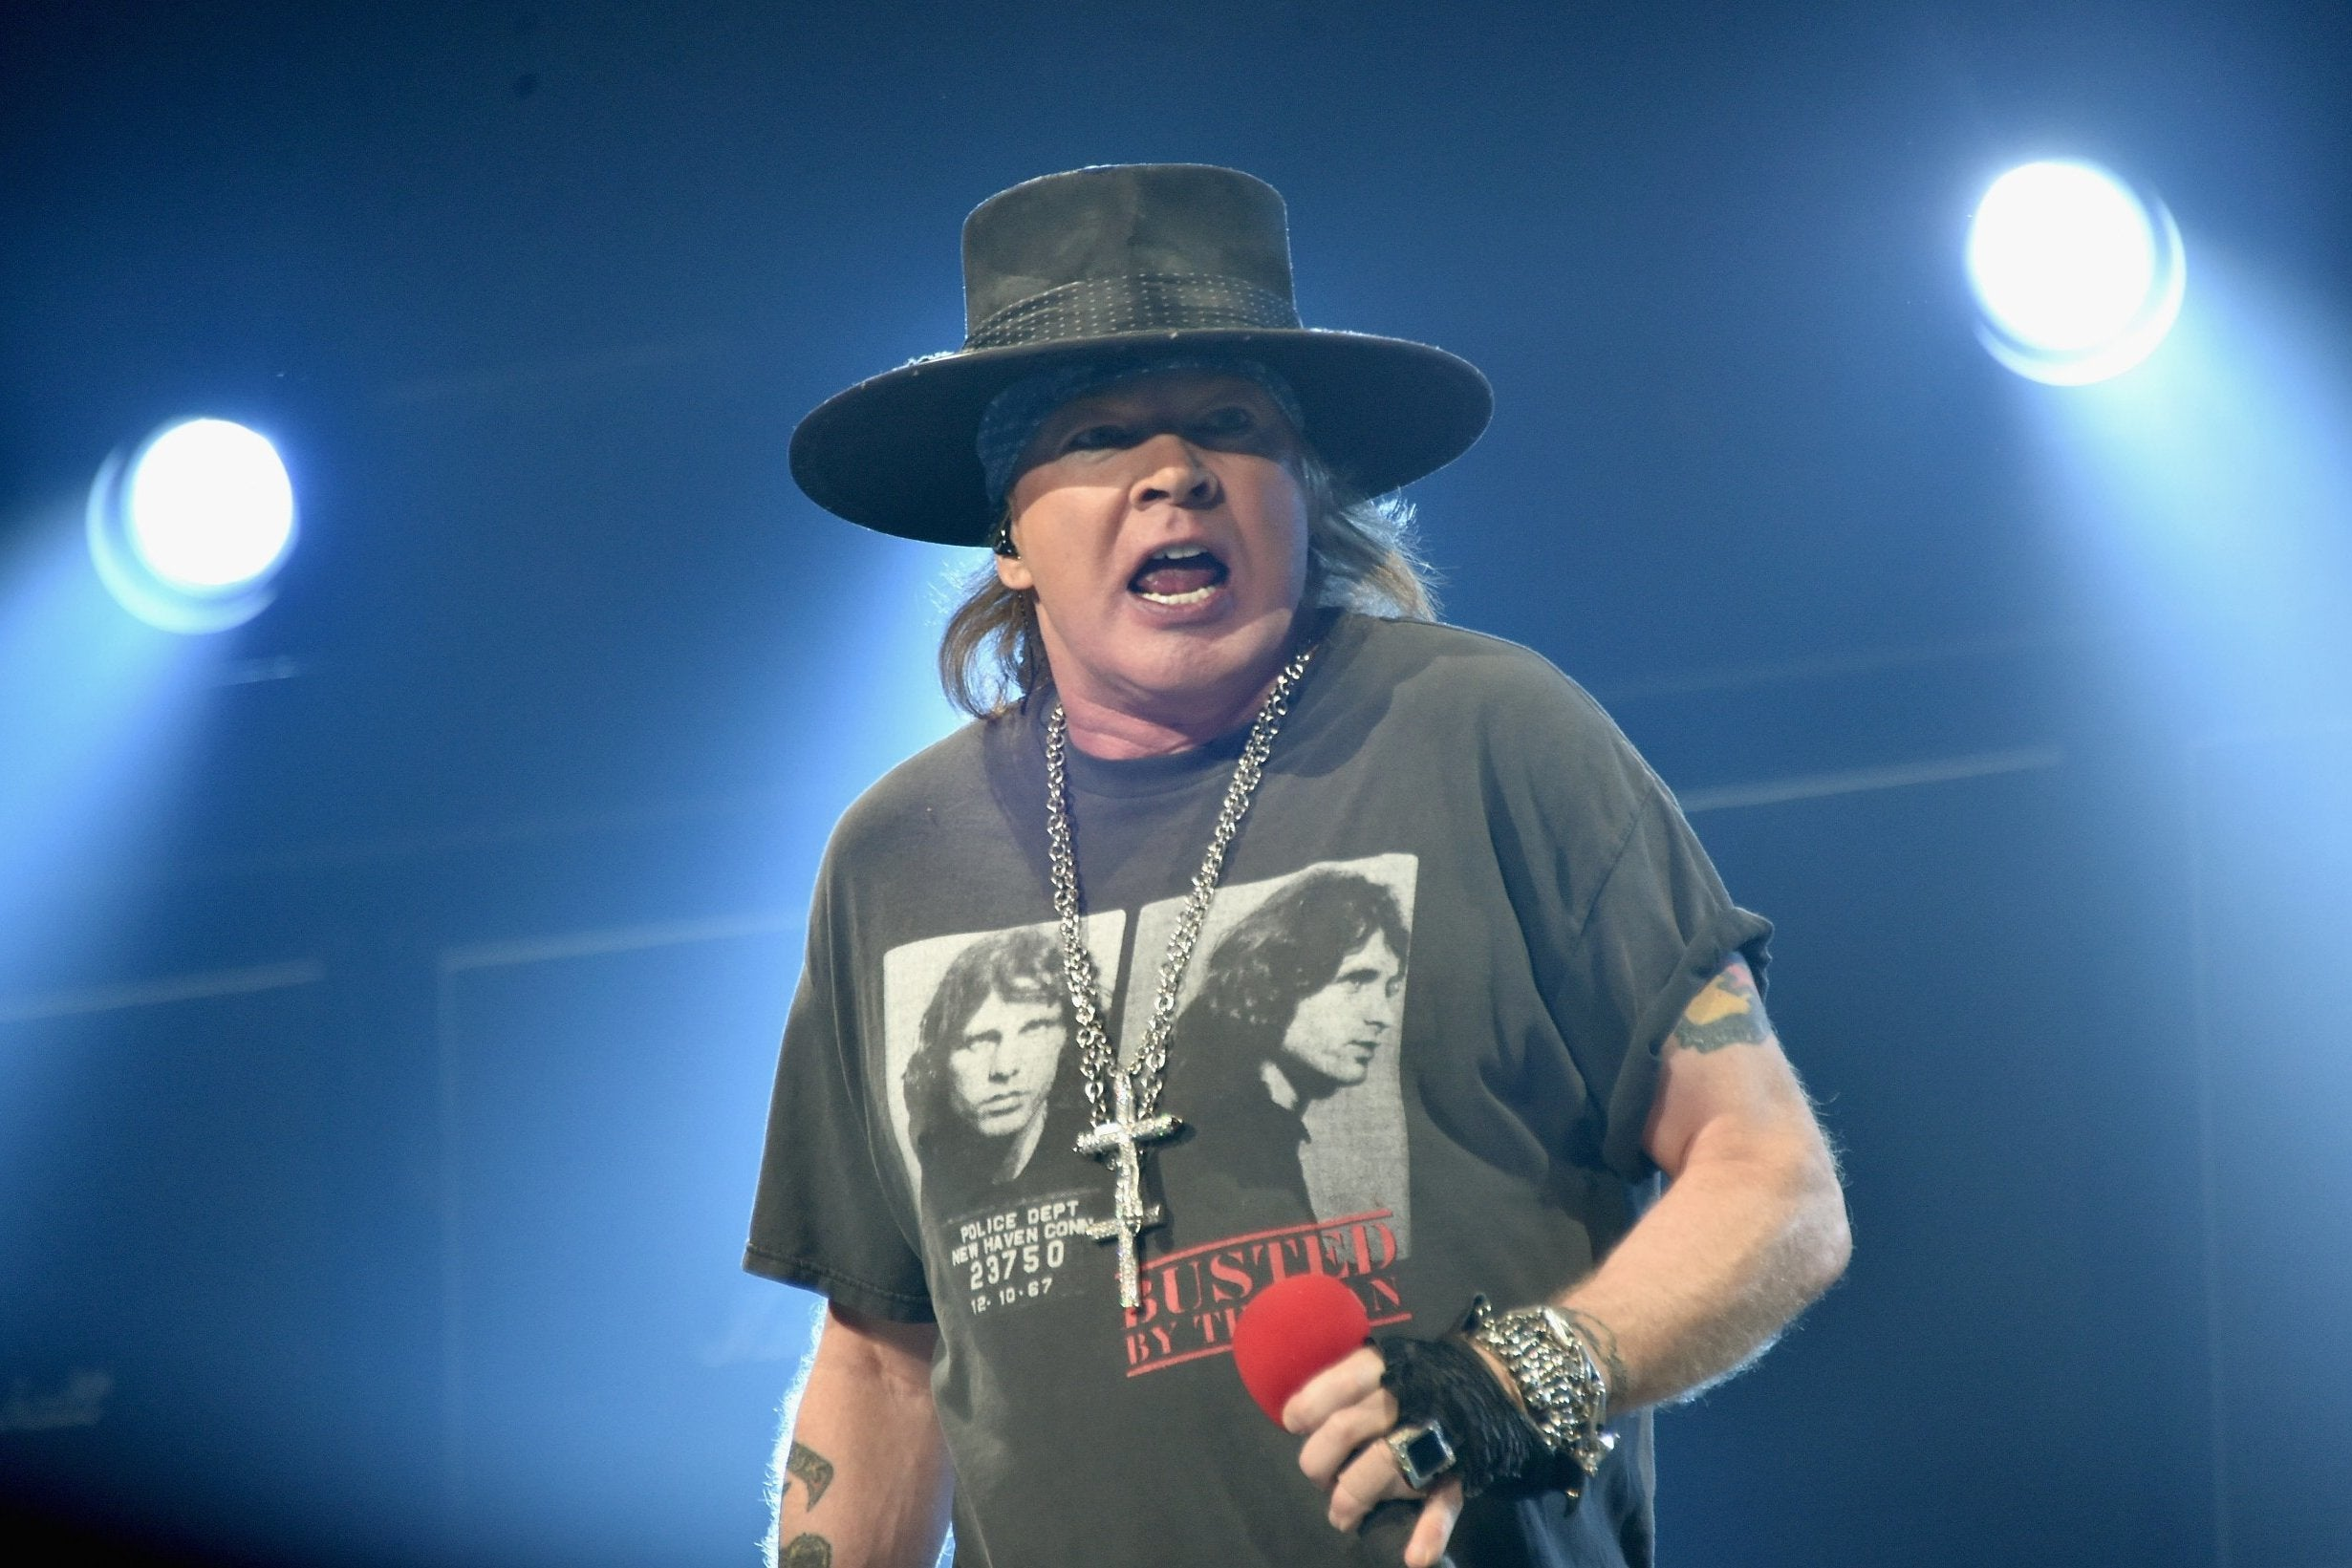 Axl Rose - latest news, breaking stories and comment - The